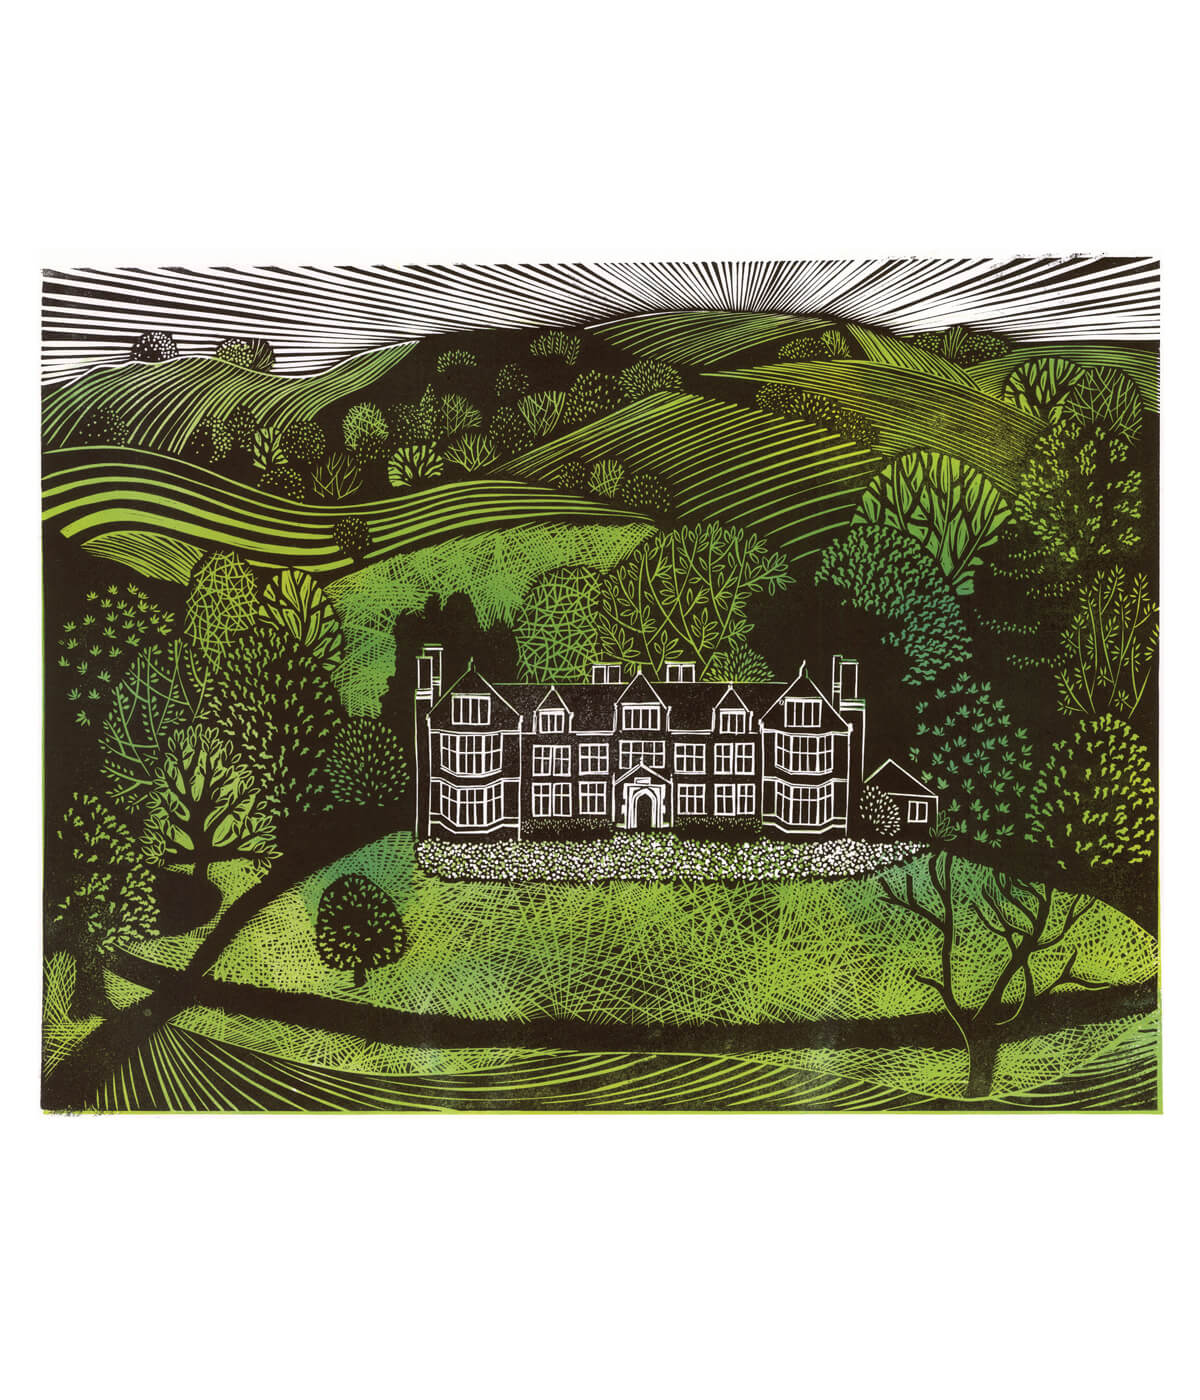 Launde Abbey, a linocut print by Sarah Kirby